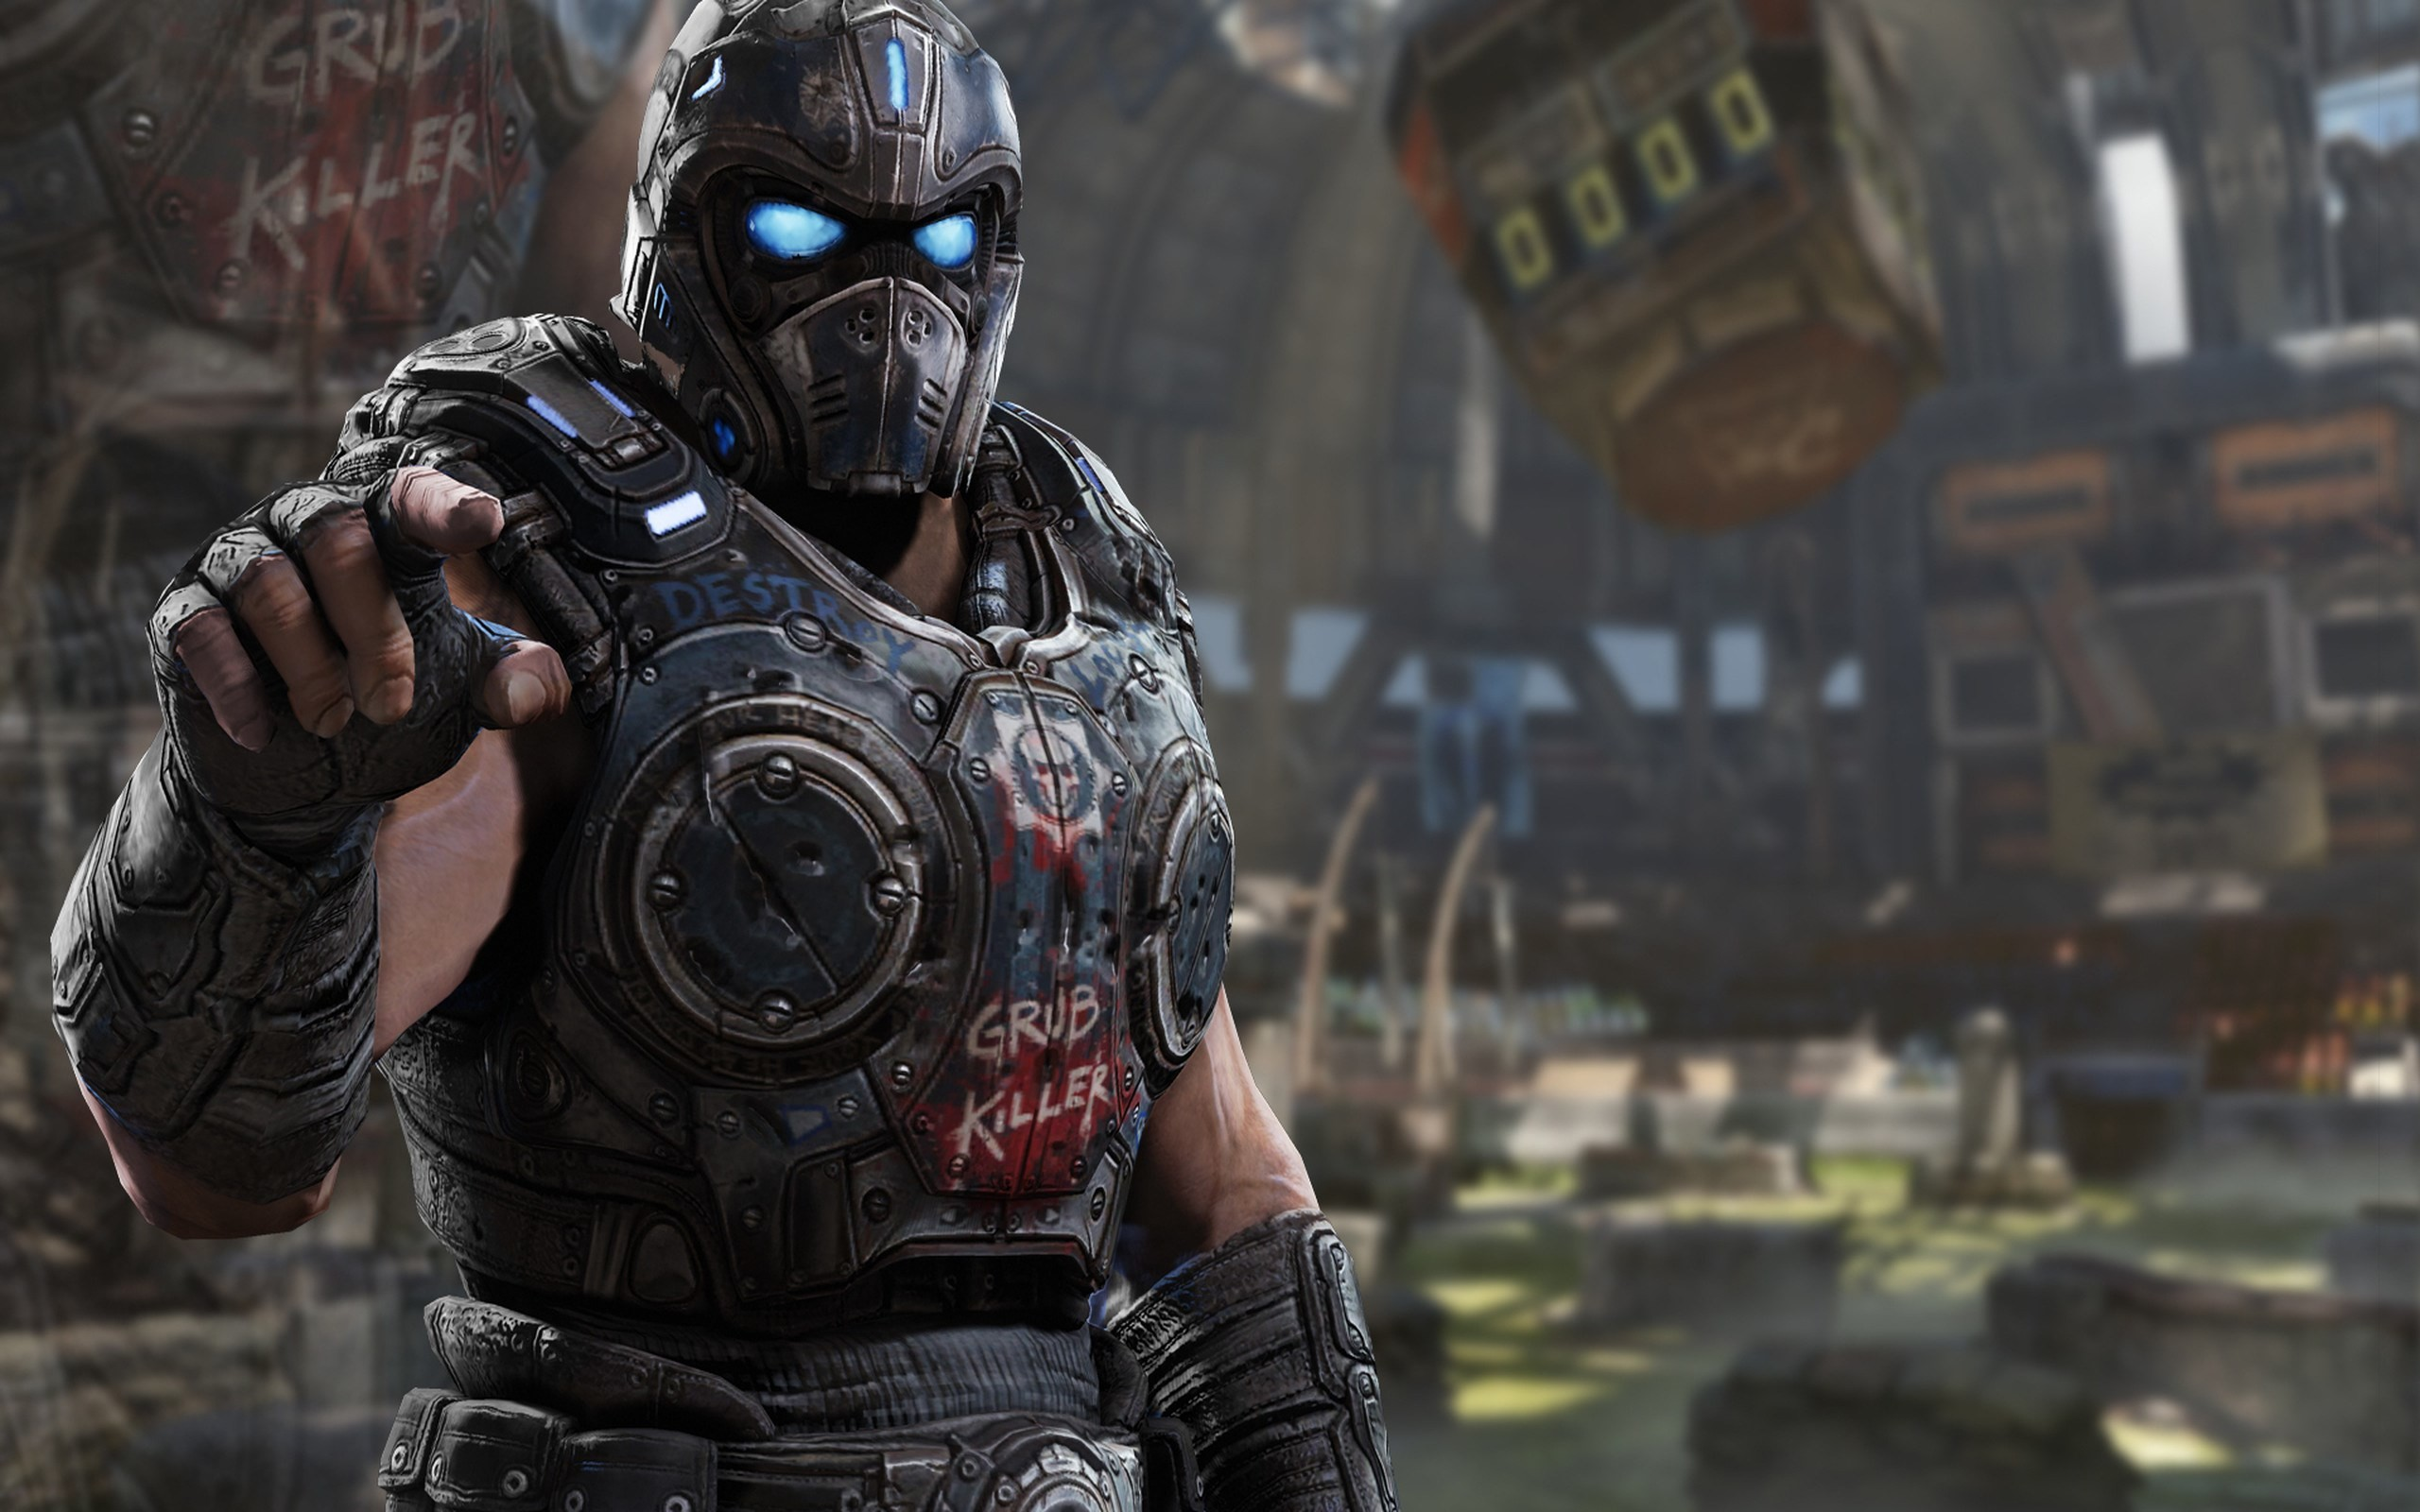 2560x1600 Gears of War 3 Wallpaper Pack 1080p HD - Getriebe des Krieges 3 Kategorie